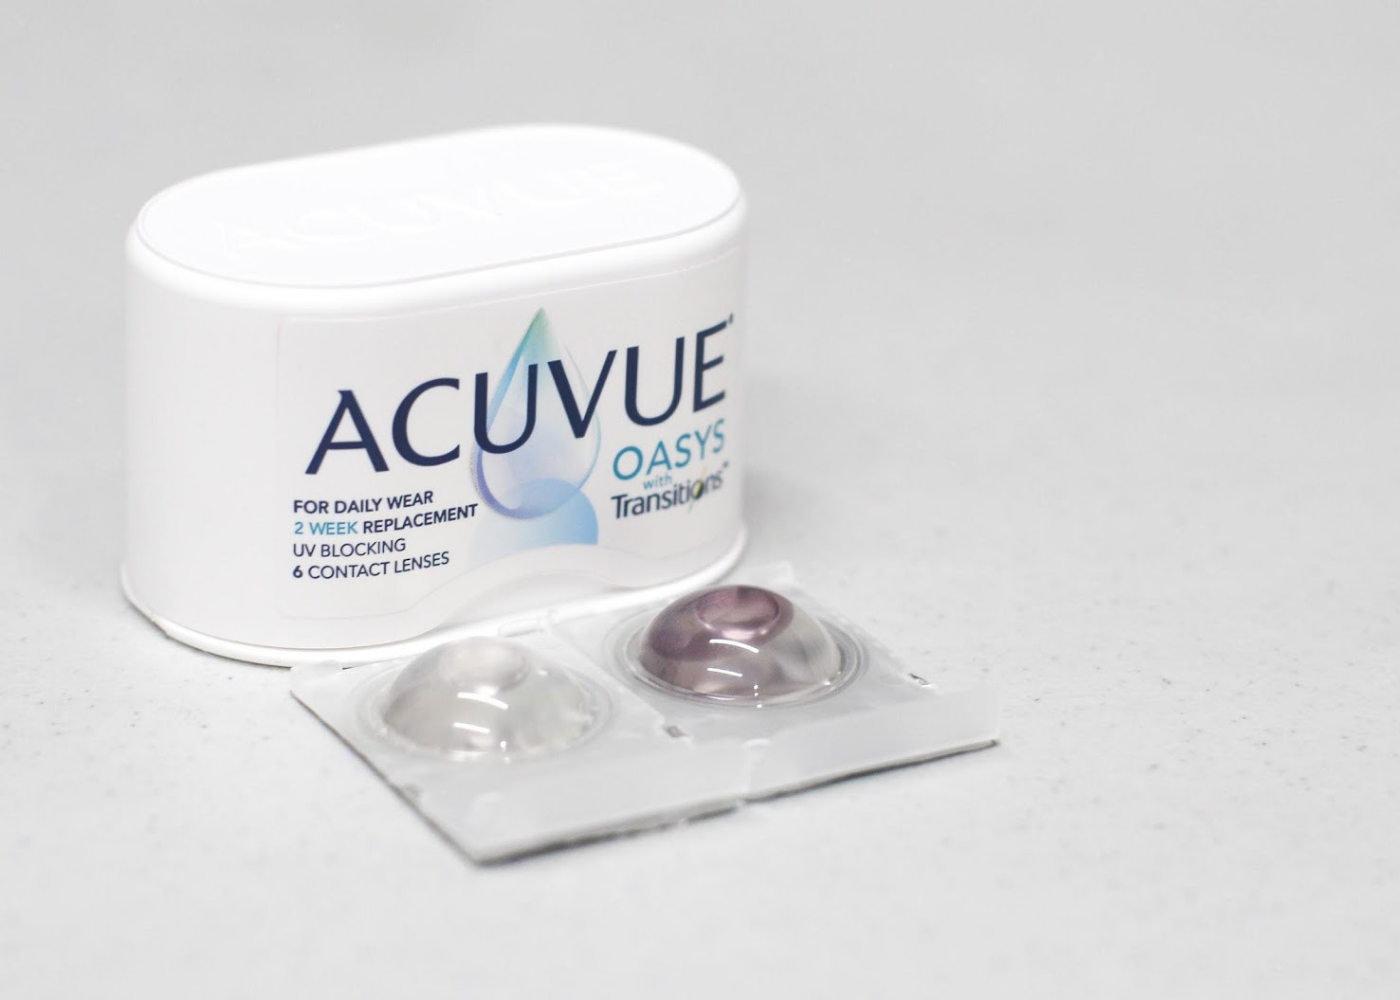 ACUVUE OASYS Contact Lenses with Transitions – Left blister pack when lenses are inactivated and right blister pack when it is activated.